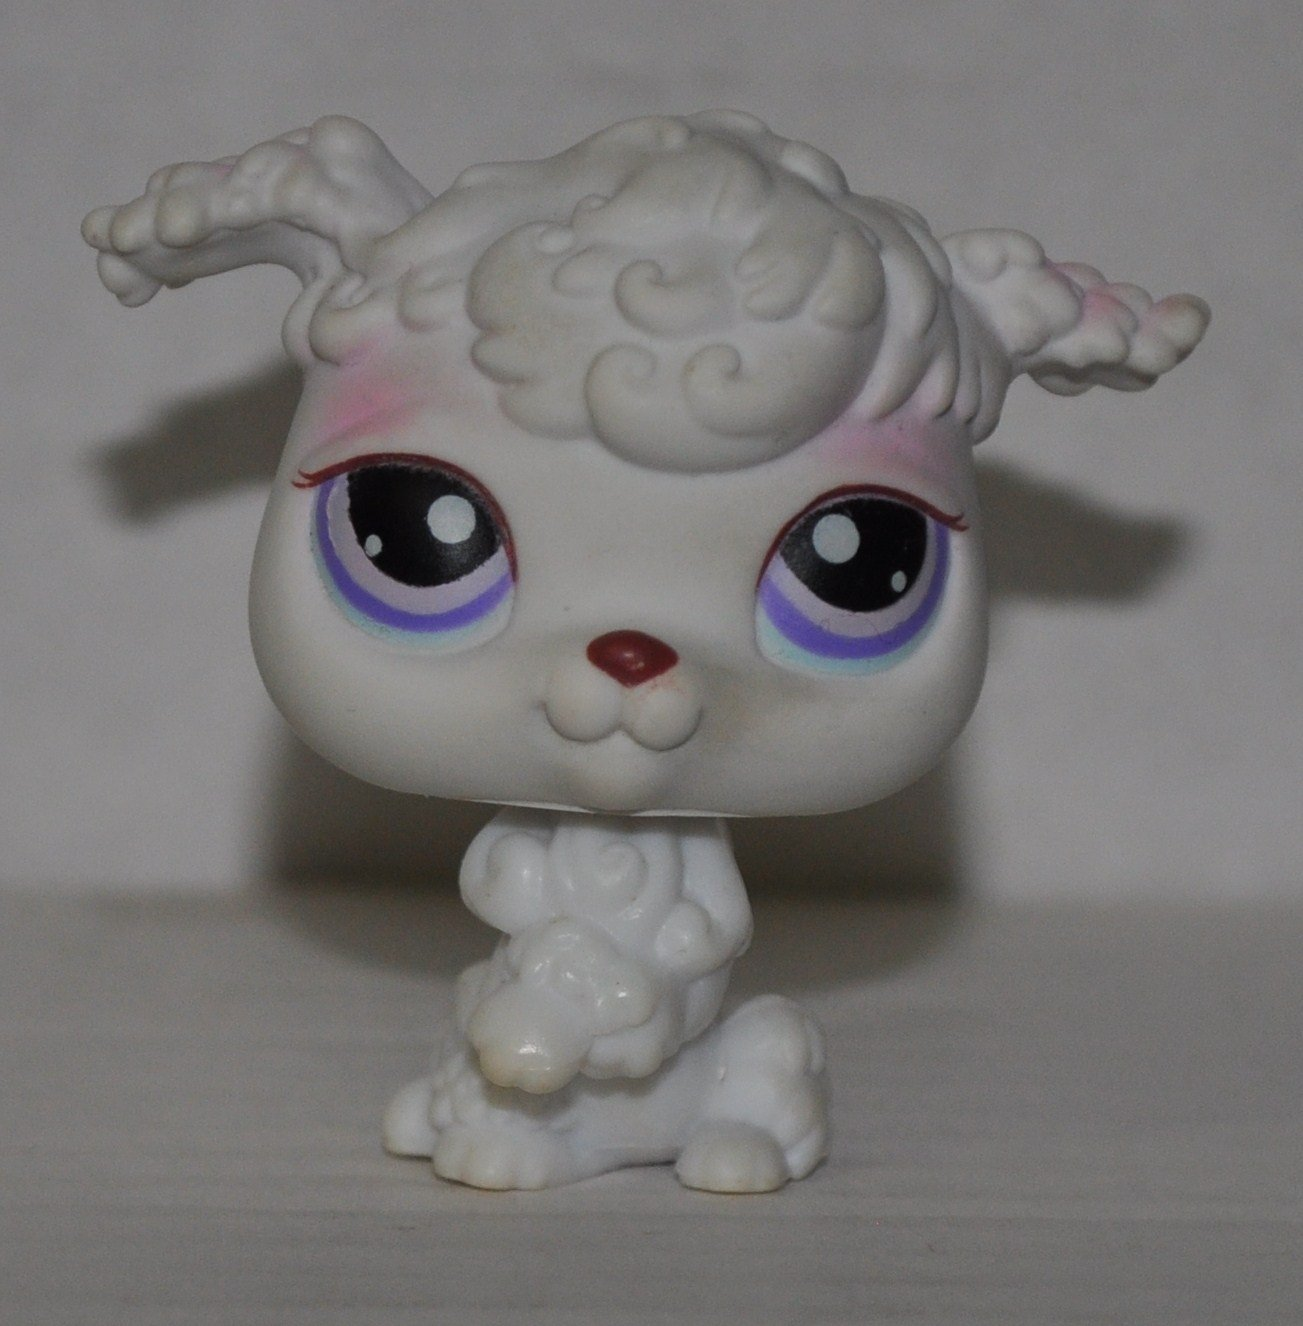 LPS Collectible Replacement Figure Retired Loose OOP Out of Package /& Print White Collector Toy - Littlest Pet Shop Poodle #101